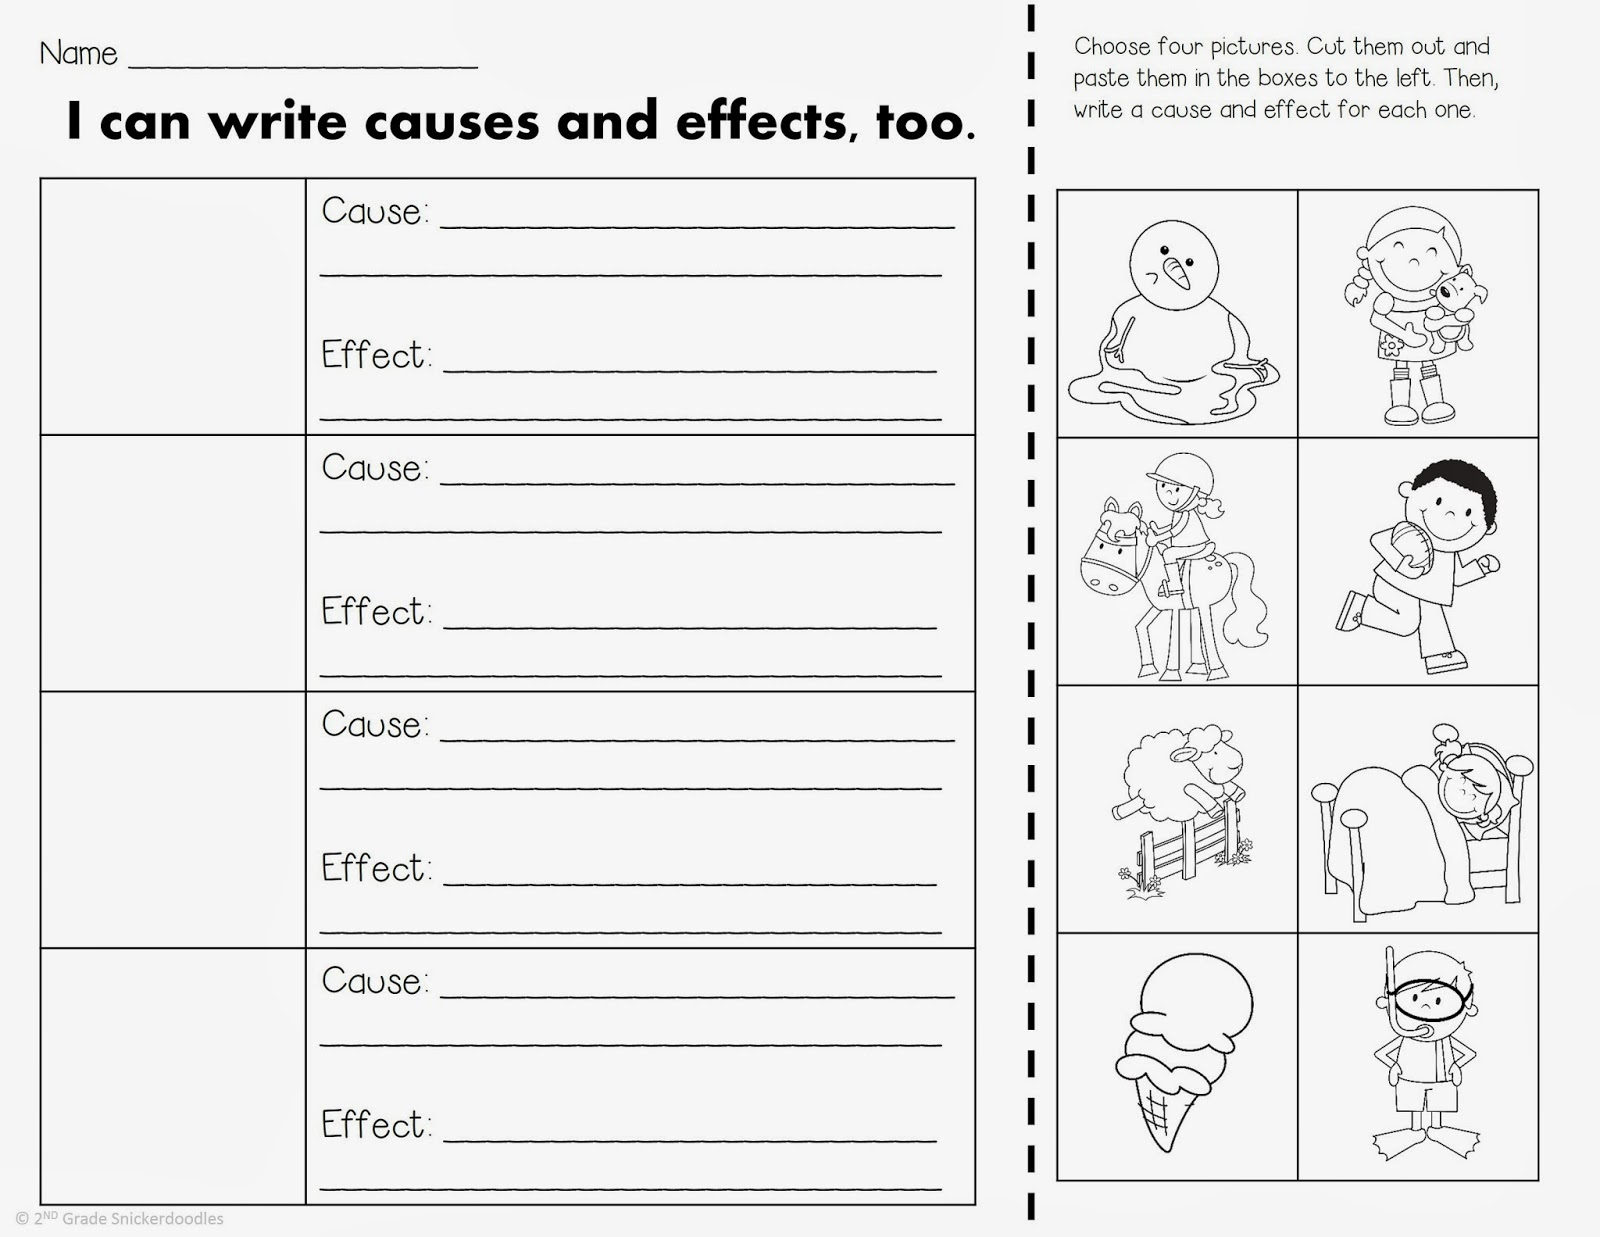 Cause And Effect Worksheet For 7th Grade   Printable Worksheets and  Activities for Teachers [ 1237 x 1600 Pixel ]